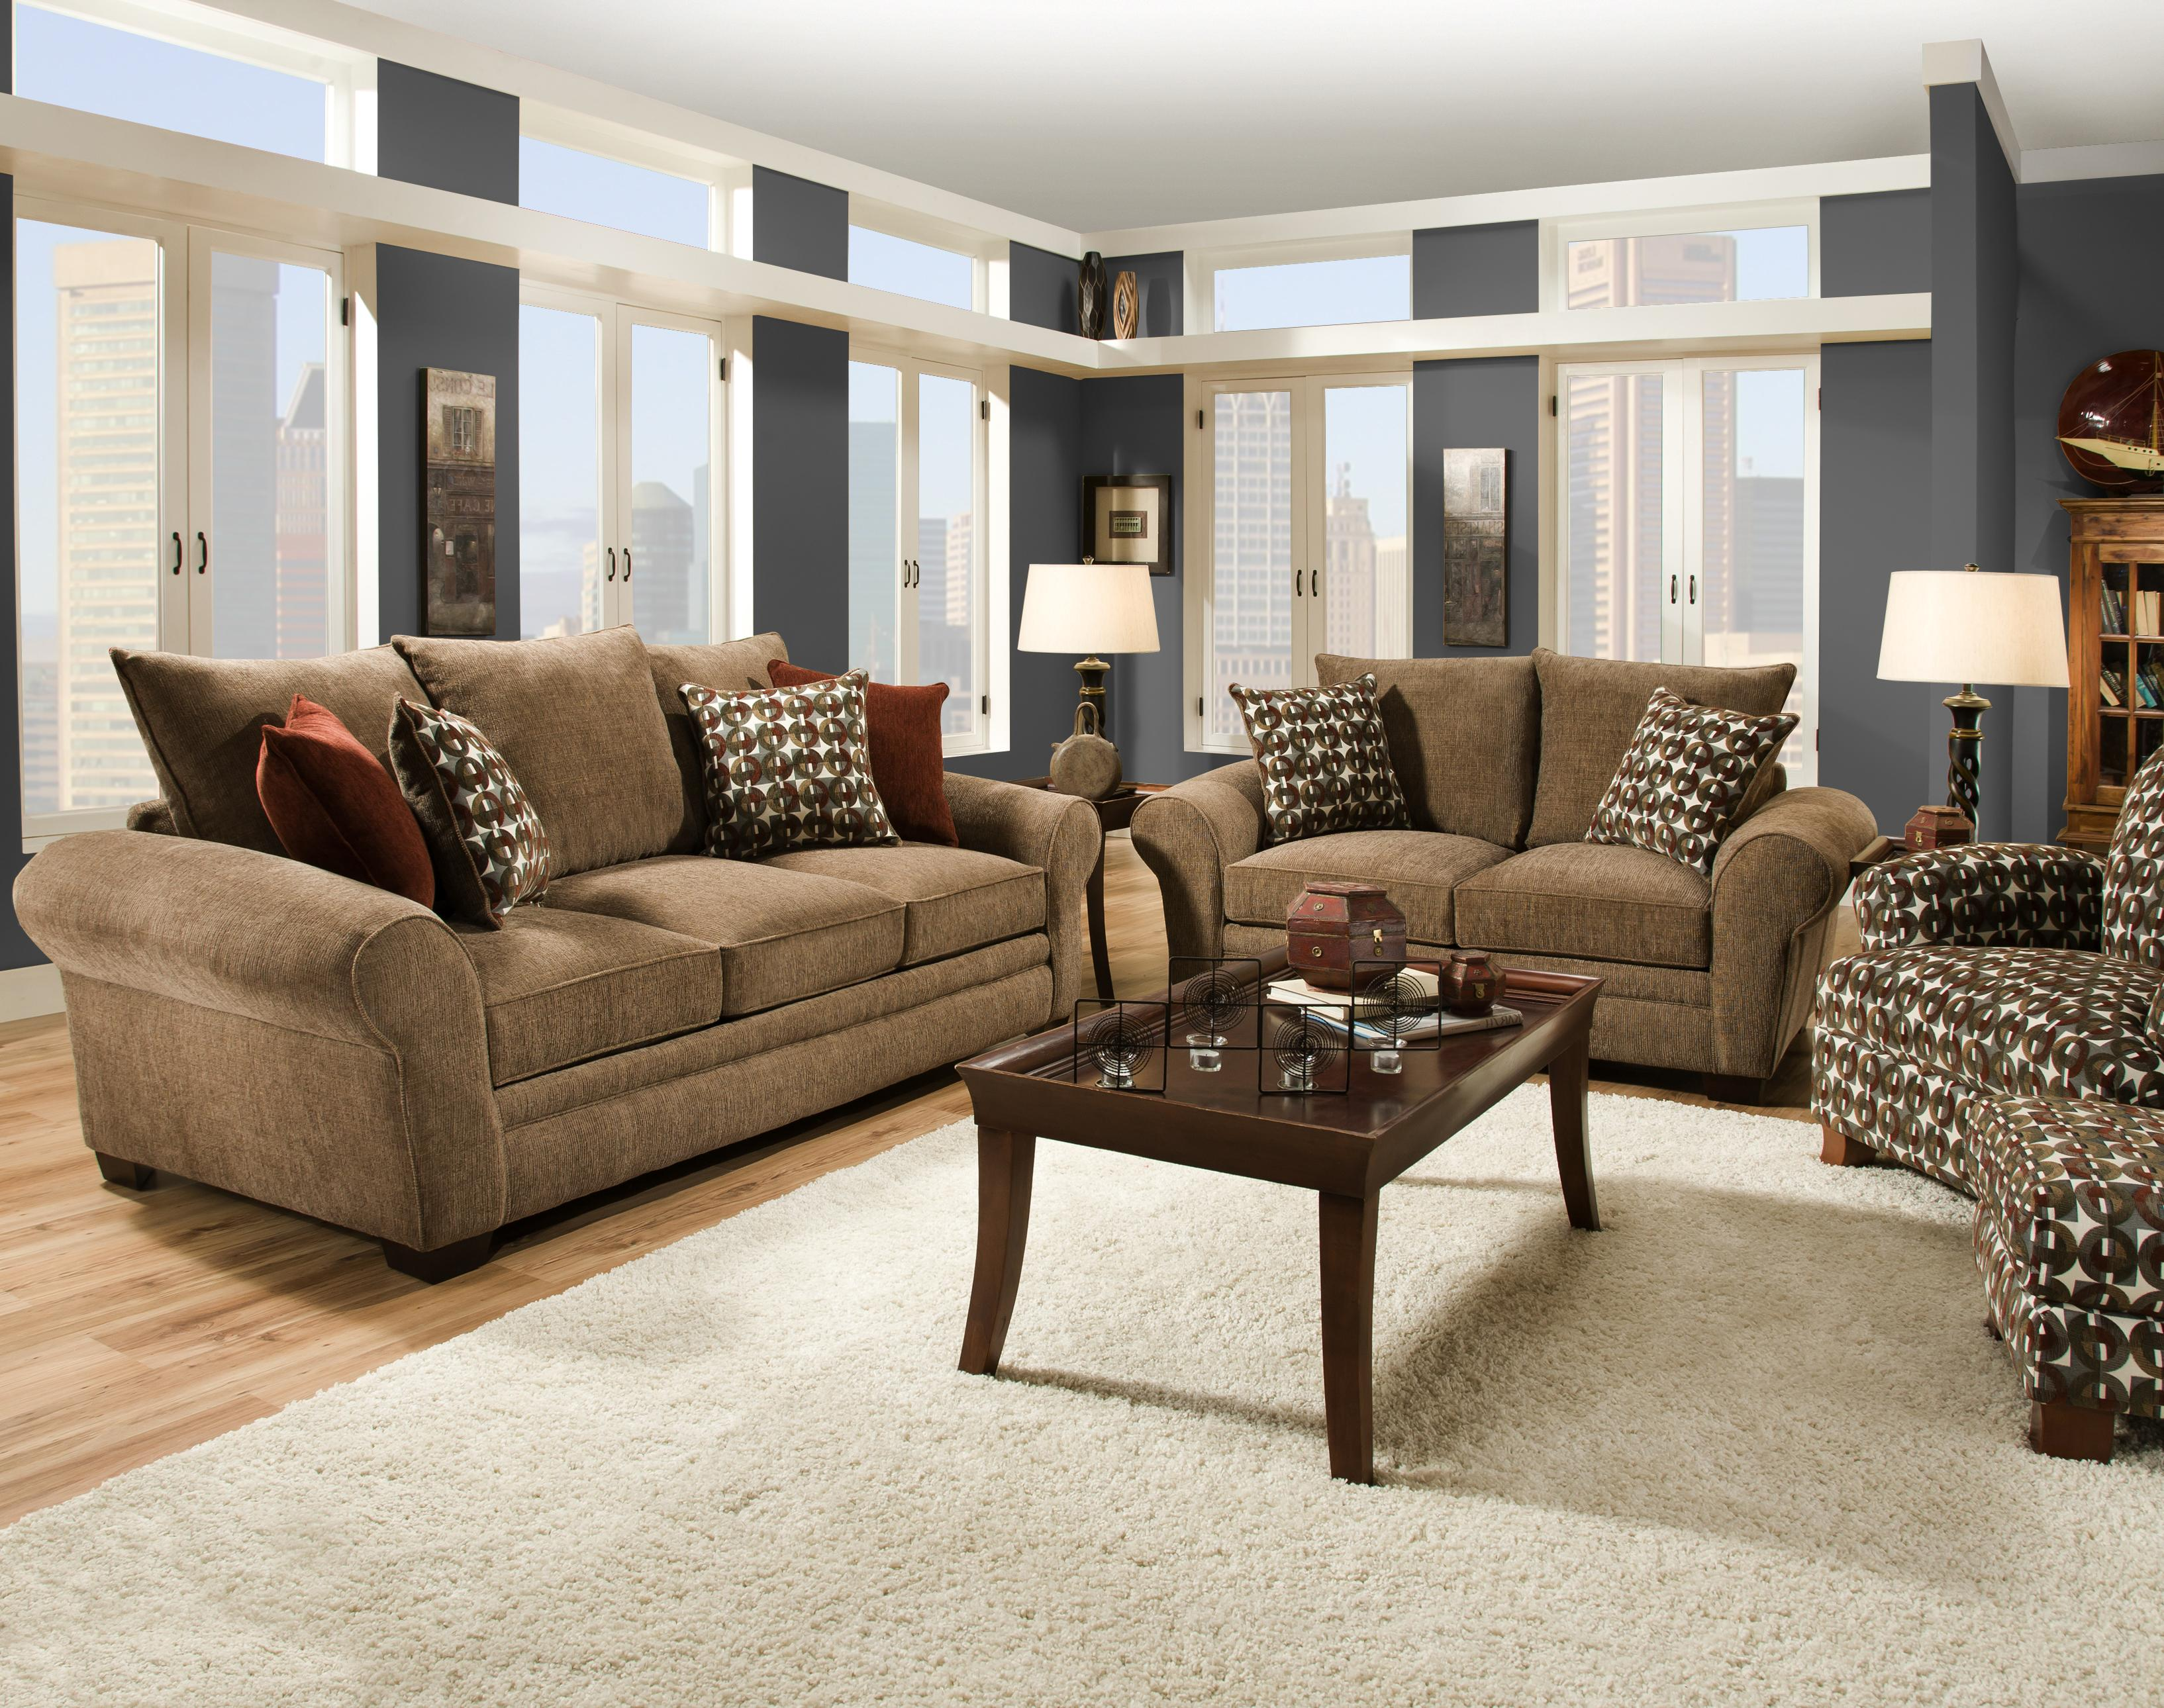 Elegant And Casual Living Room Sofa For Family Styled